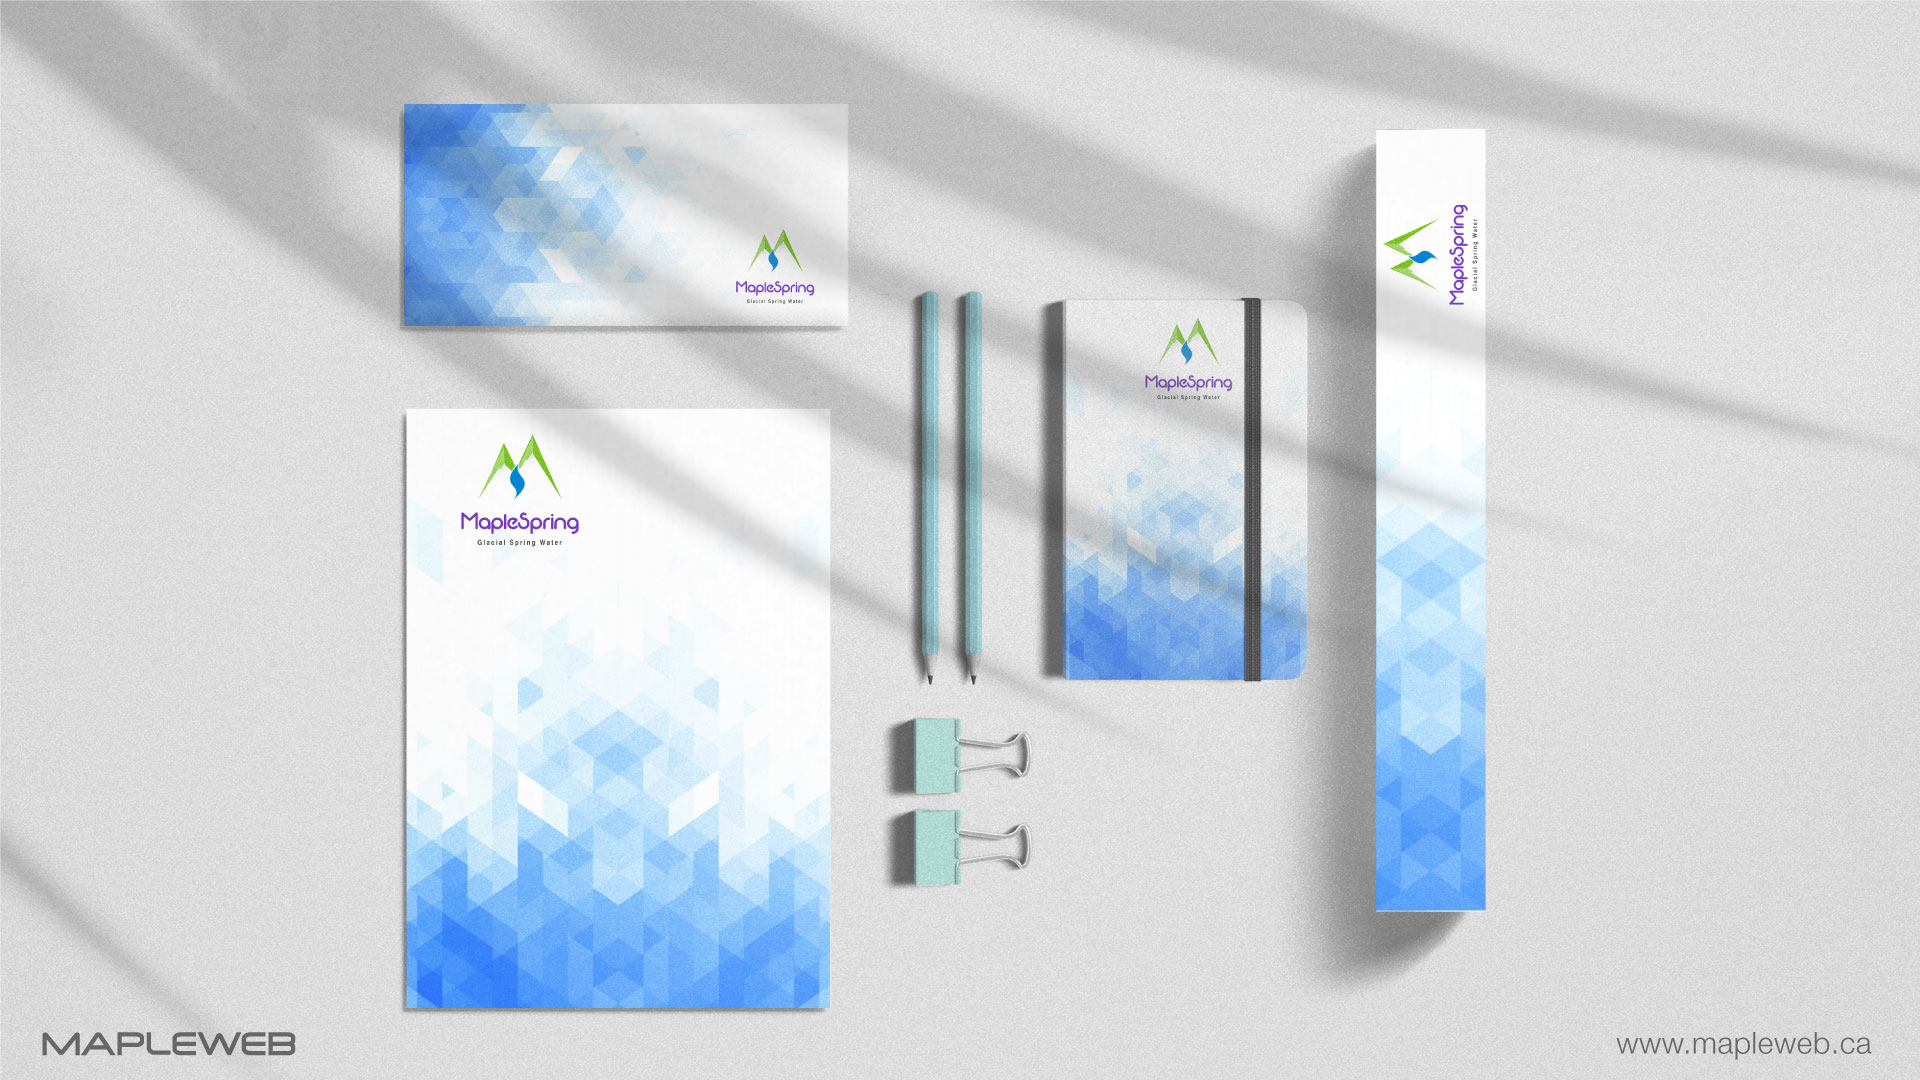 maplespring-brand-logo-design-by-mapleweb-vancouver-canada-stationery-mock